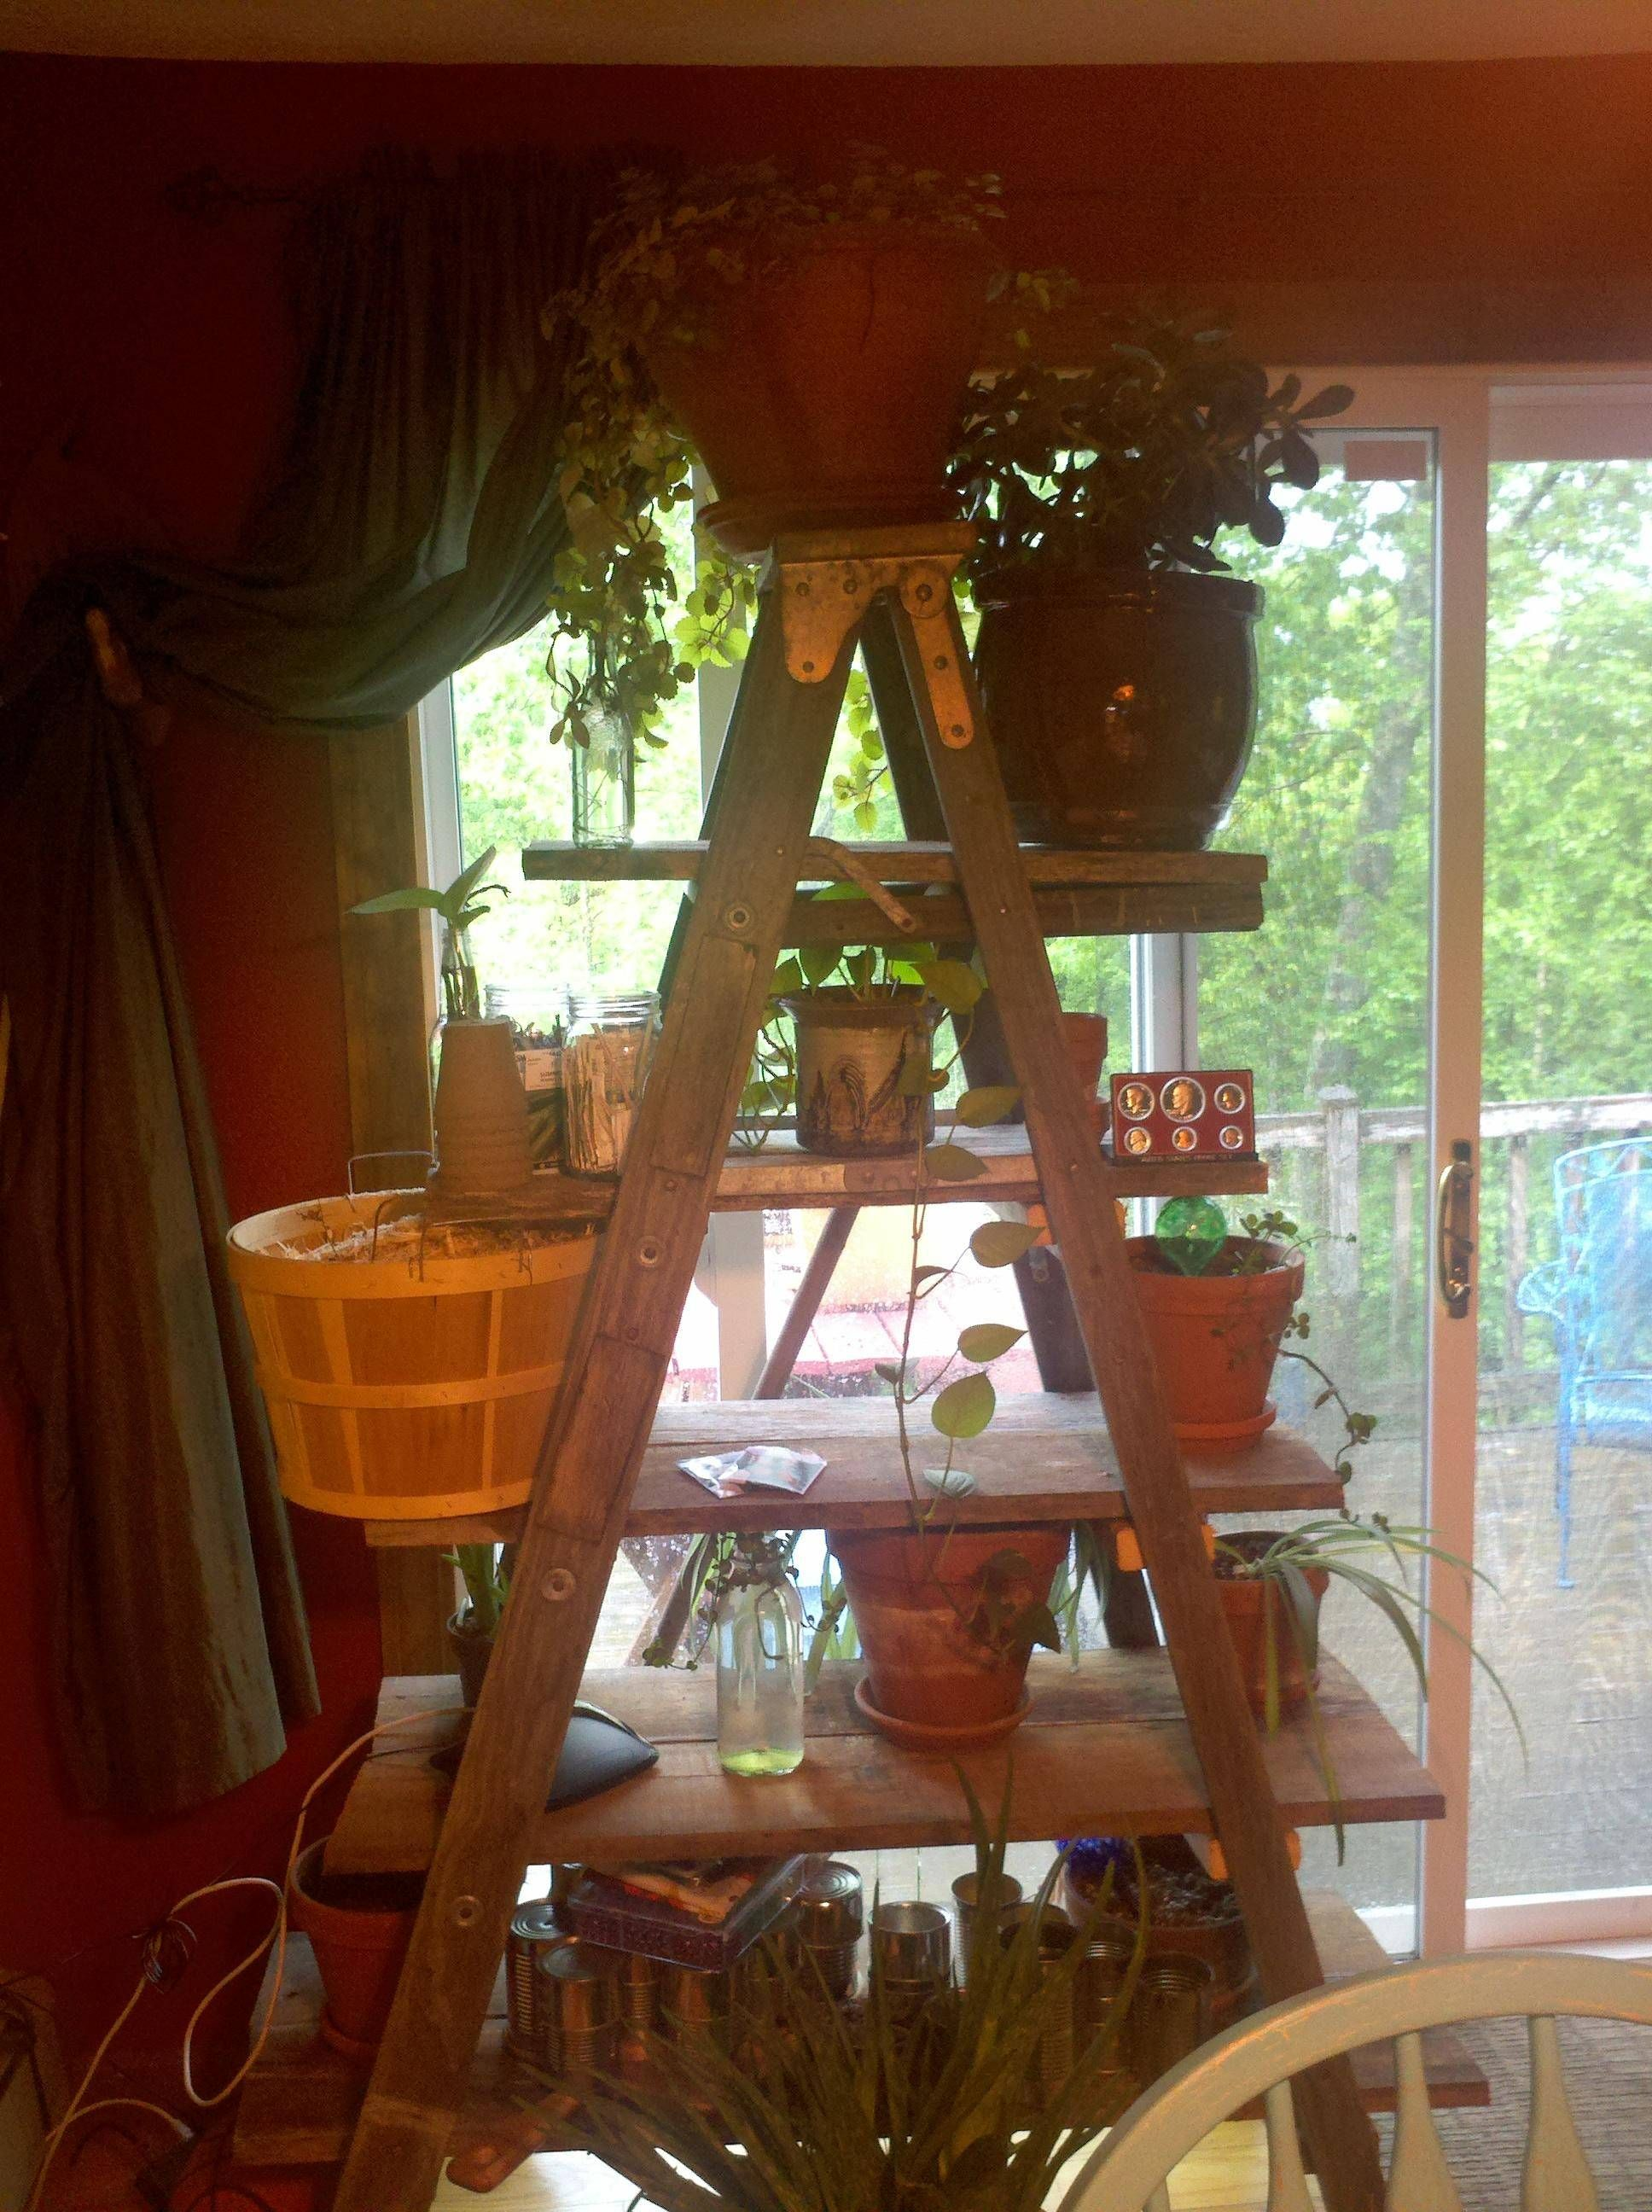 Our version of the ladder shelves! Thanks to my husband <3